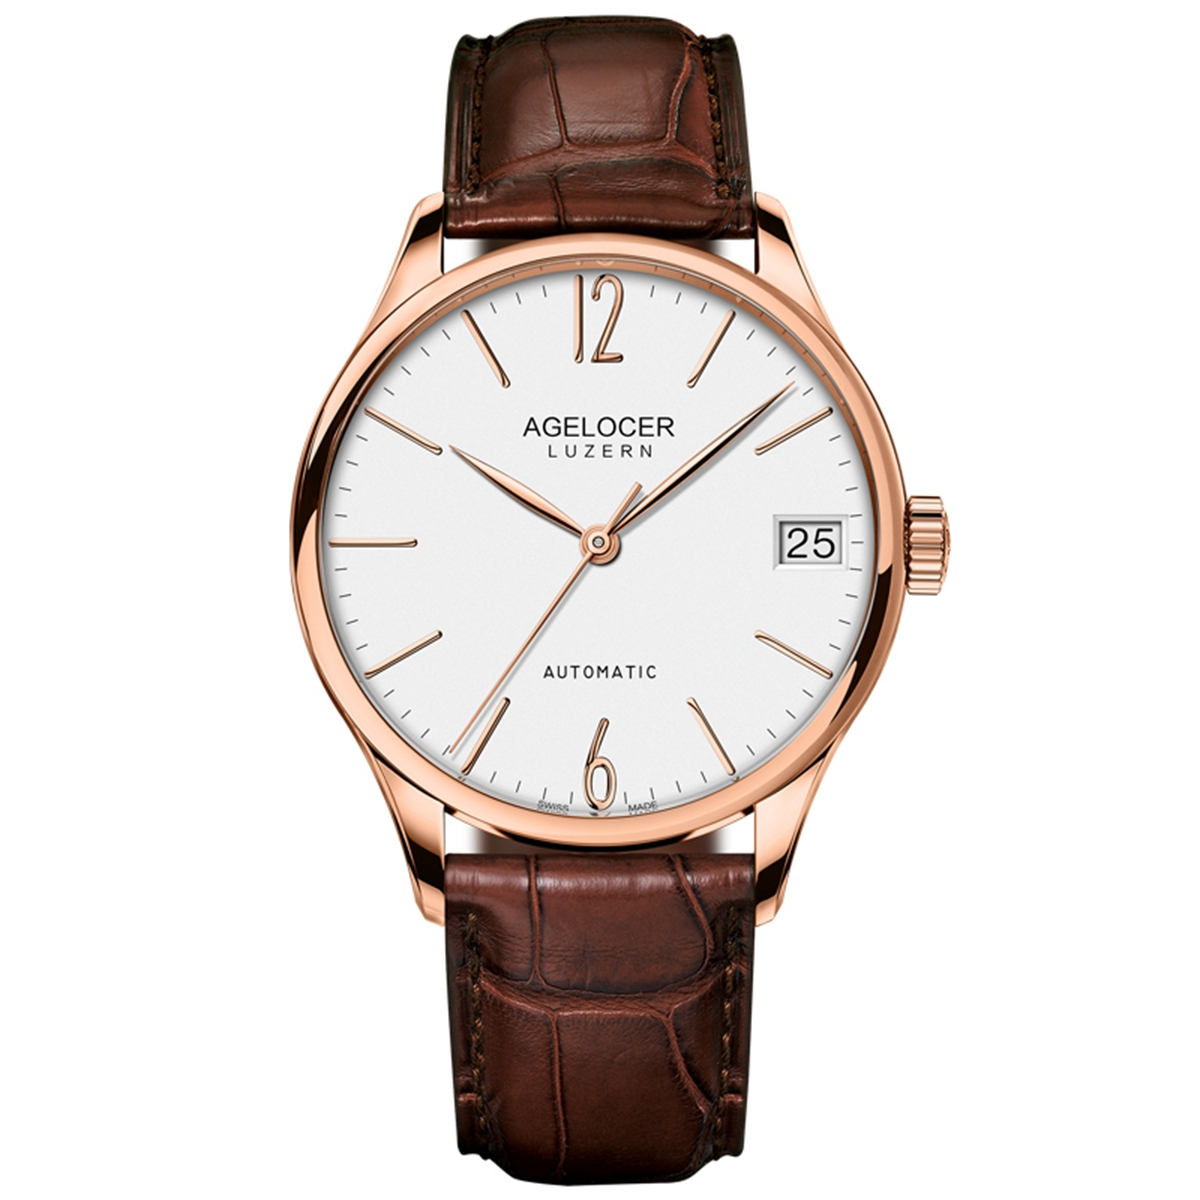 Agelocer Luxury Ultra Thin Mens Watches Genuine Leather Strap Waterproof Automatic Watches 7071D2